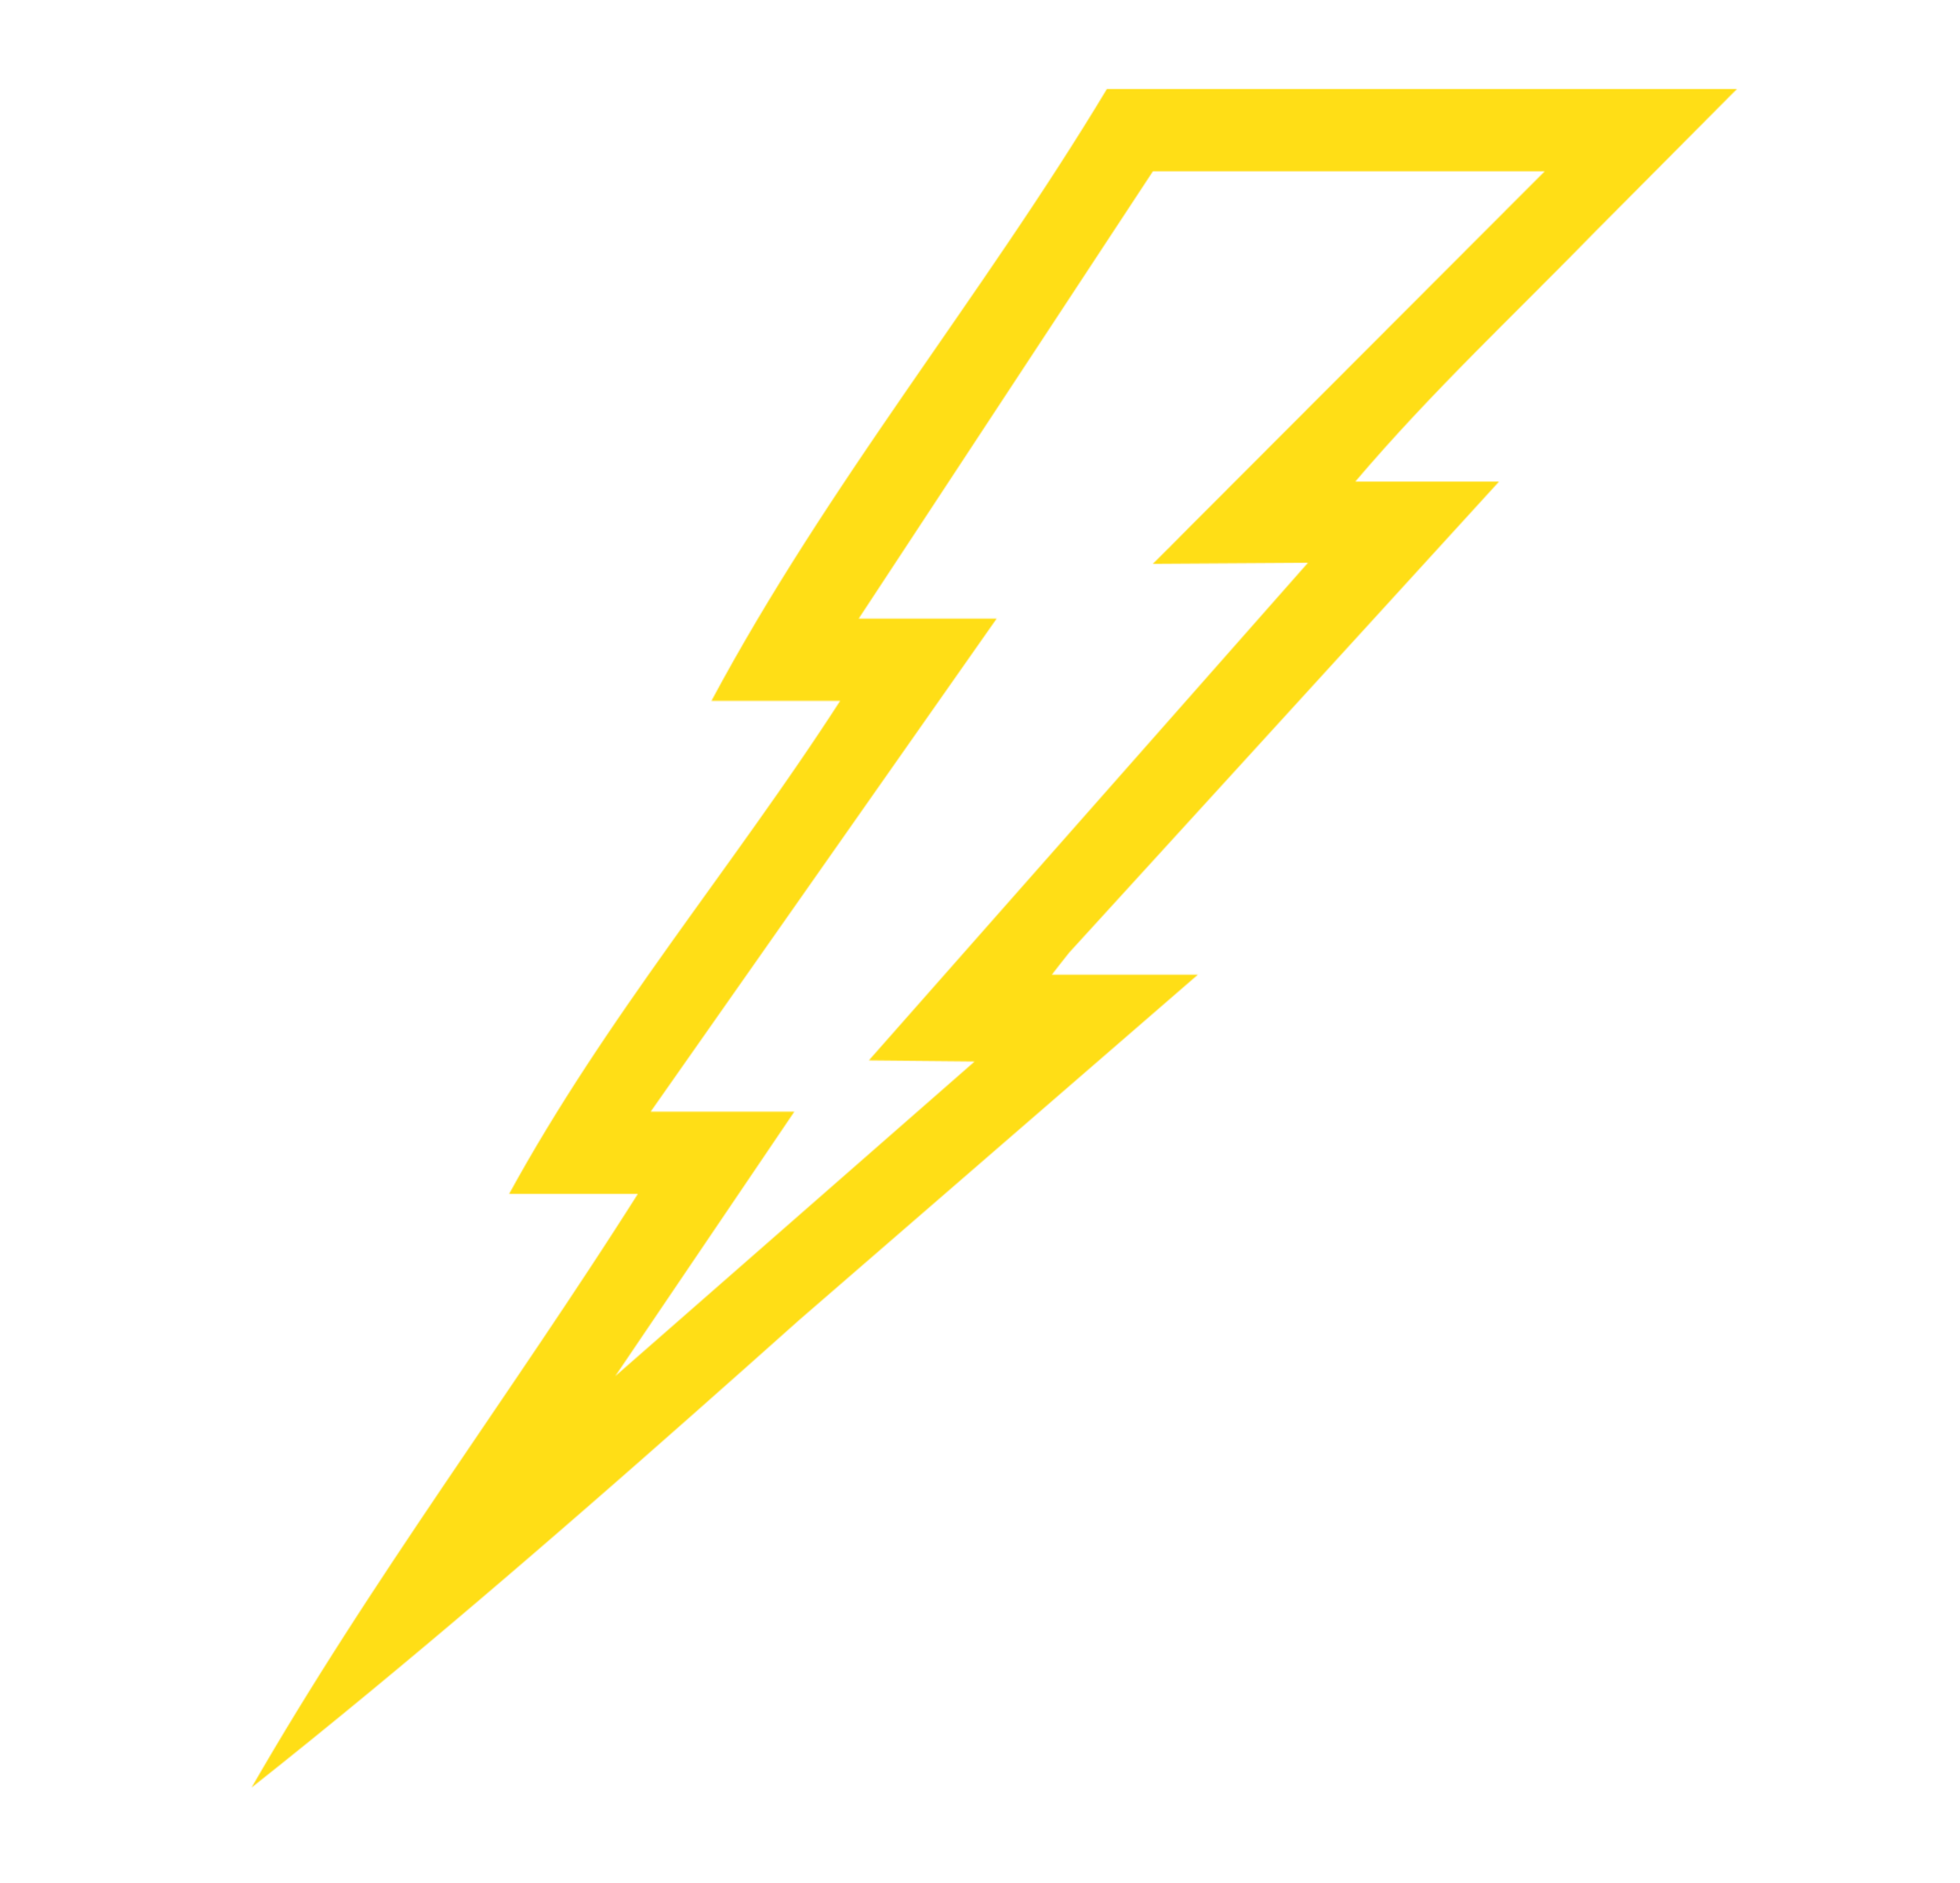 Lightning Bolt Clip Art - Cliparts.co